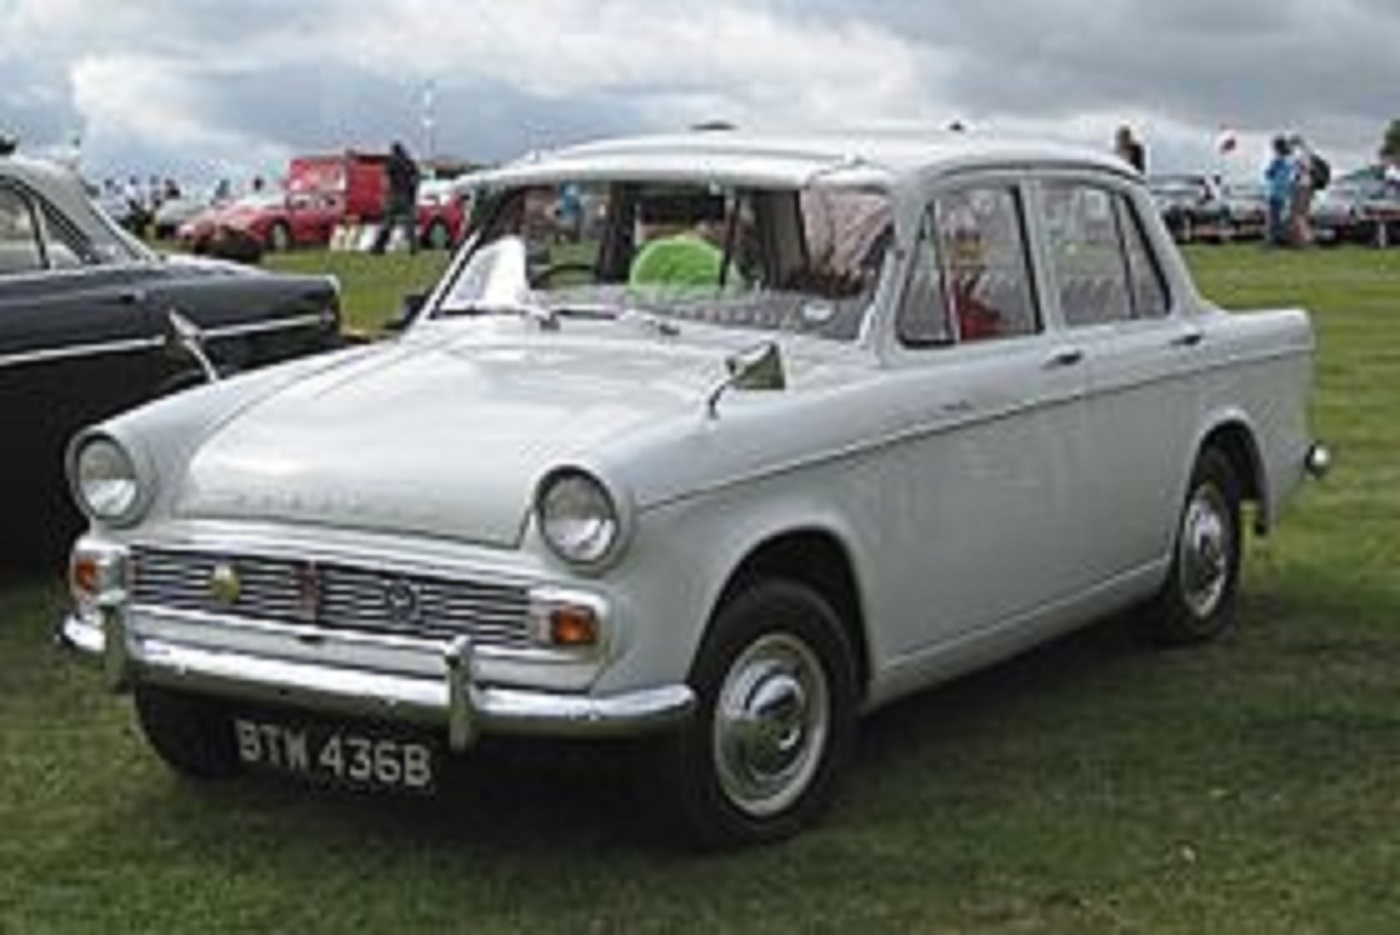 A Hillman Minx, like the one Dan used to drive.